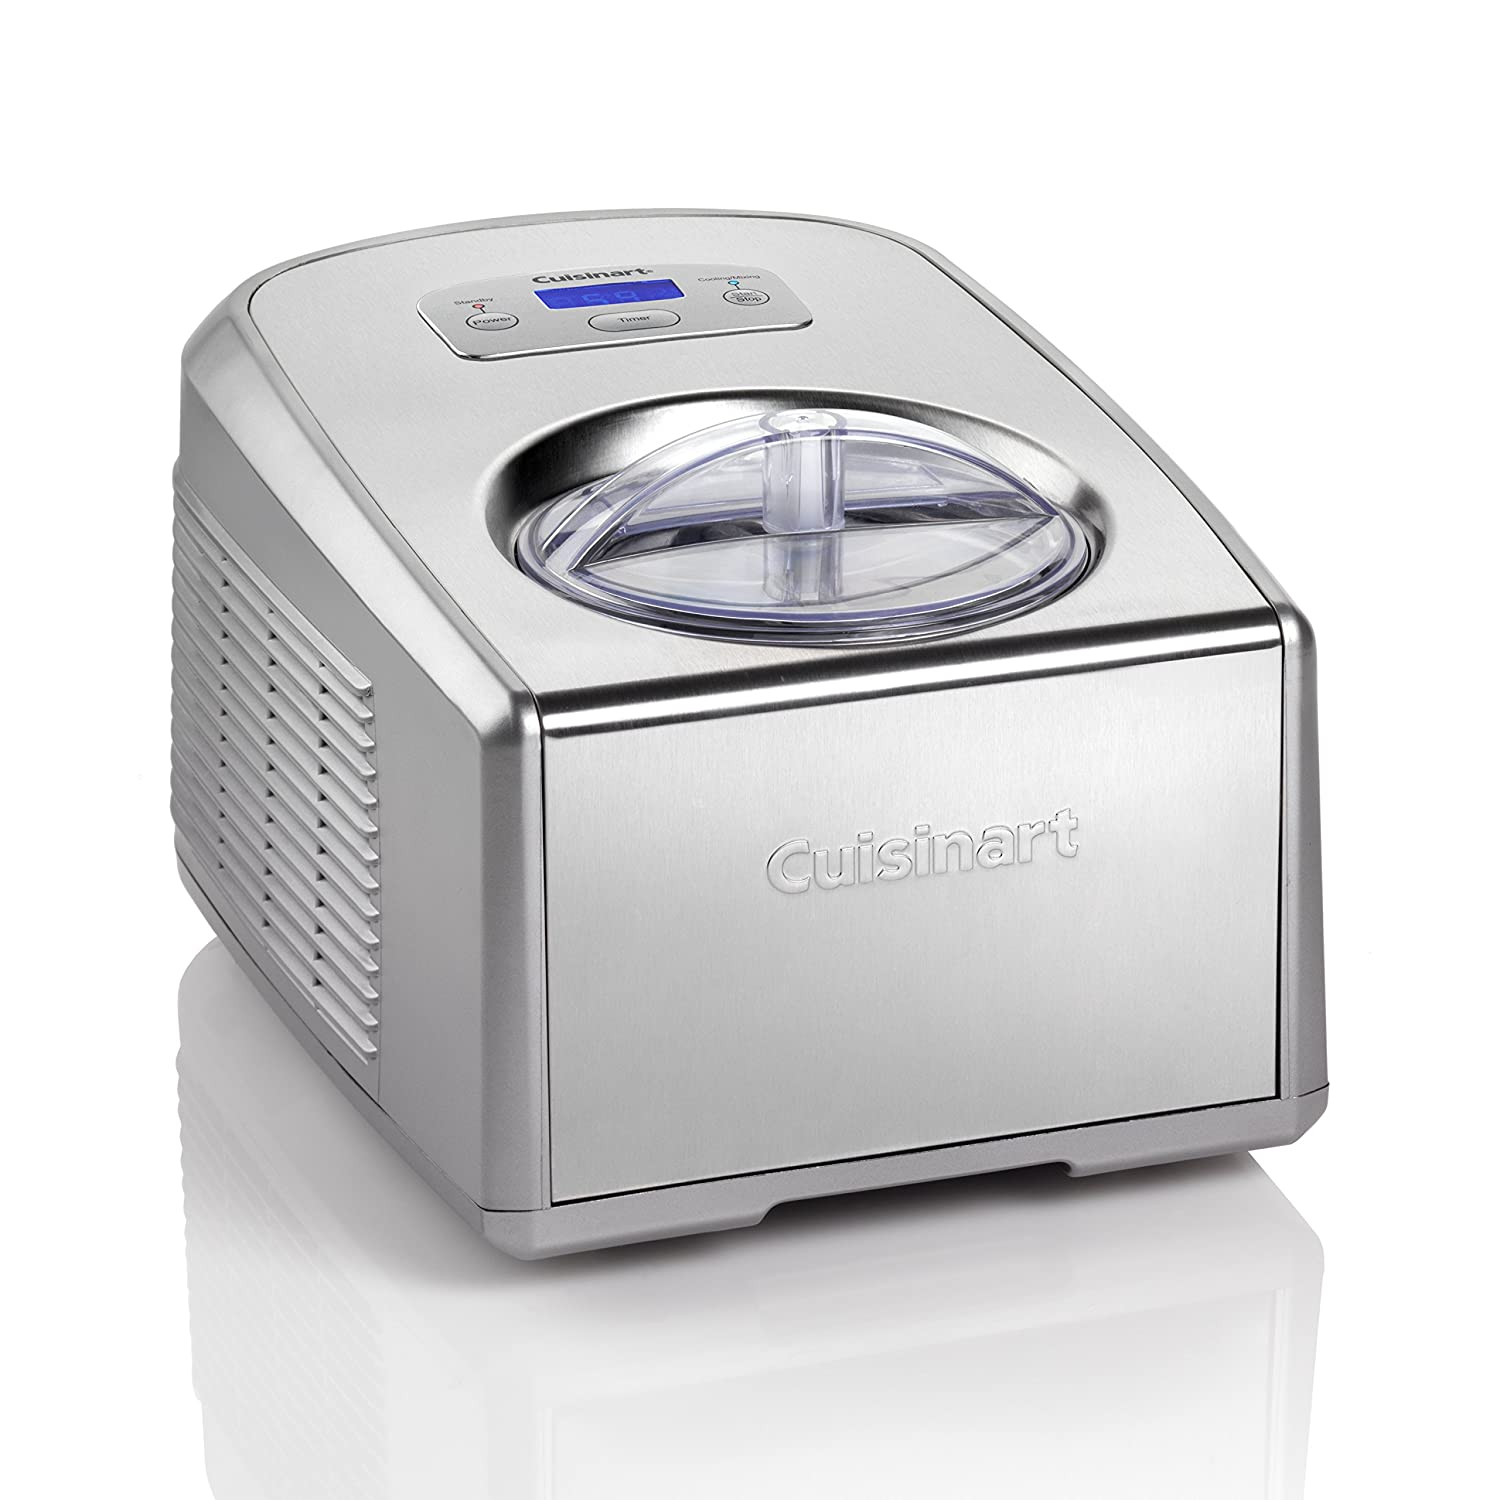 Cuisinart Gelato and Ice Cream Maker - Silver ICE100BCU